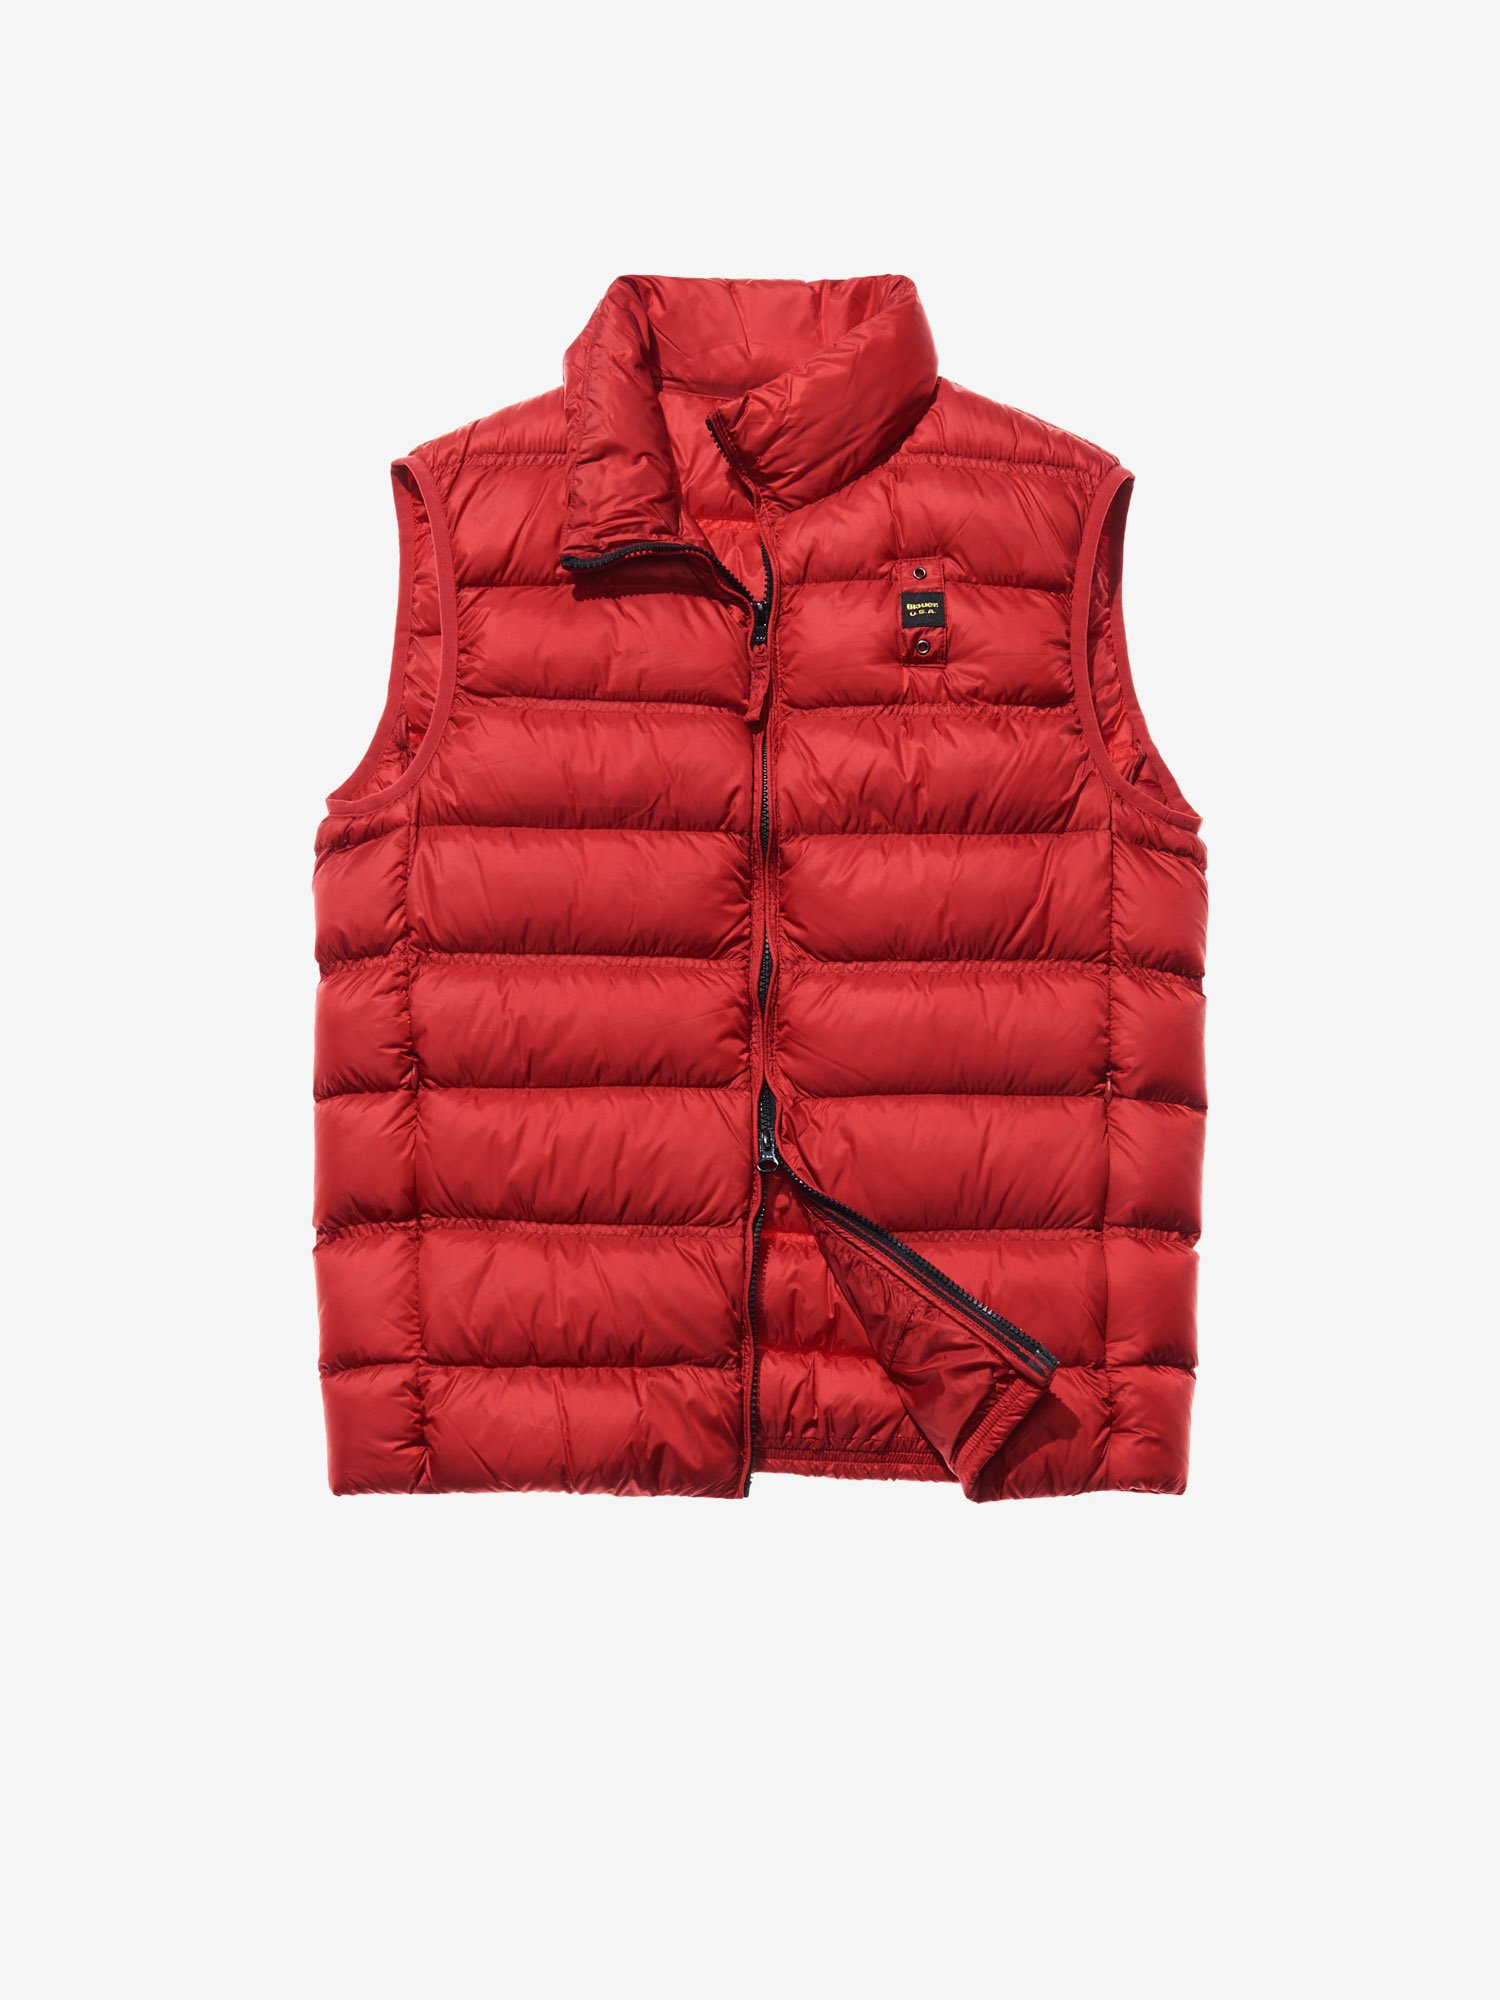 Blauer - ANGELO DOWN VEST - Red Bloode - Blauer